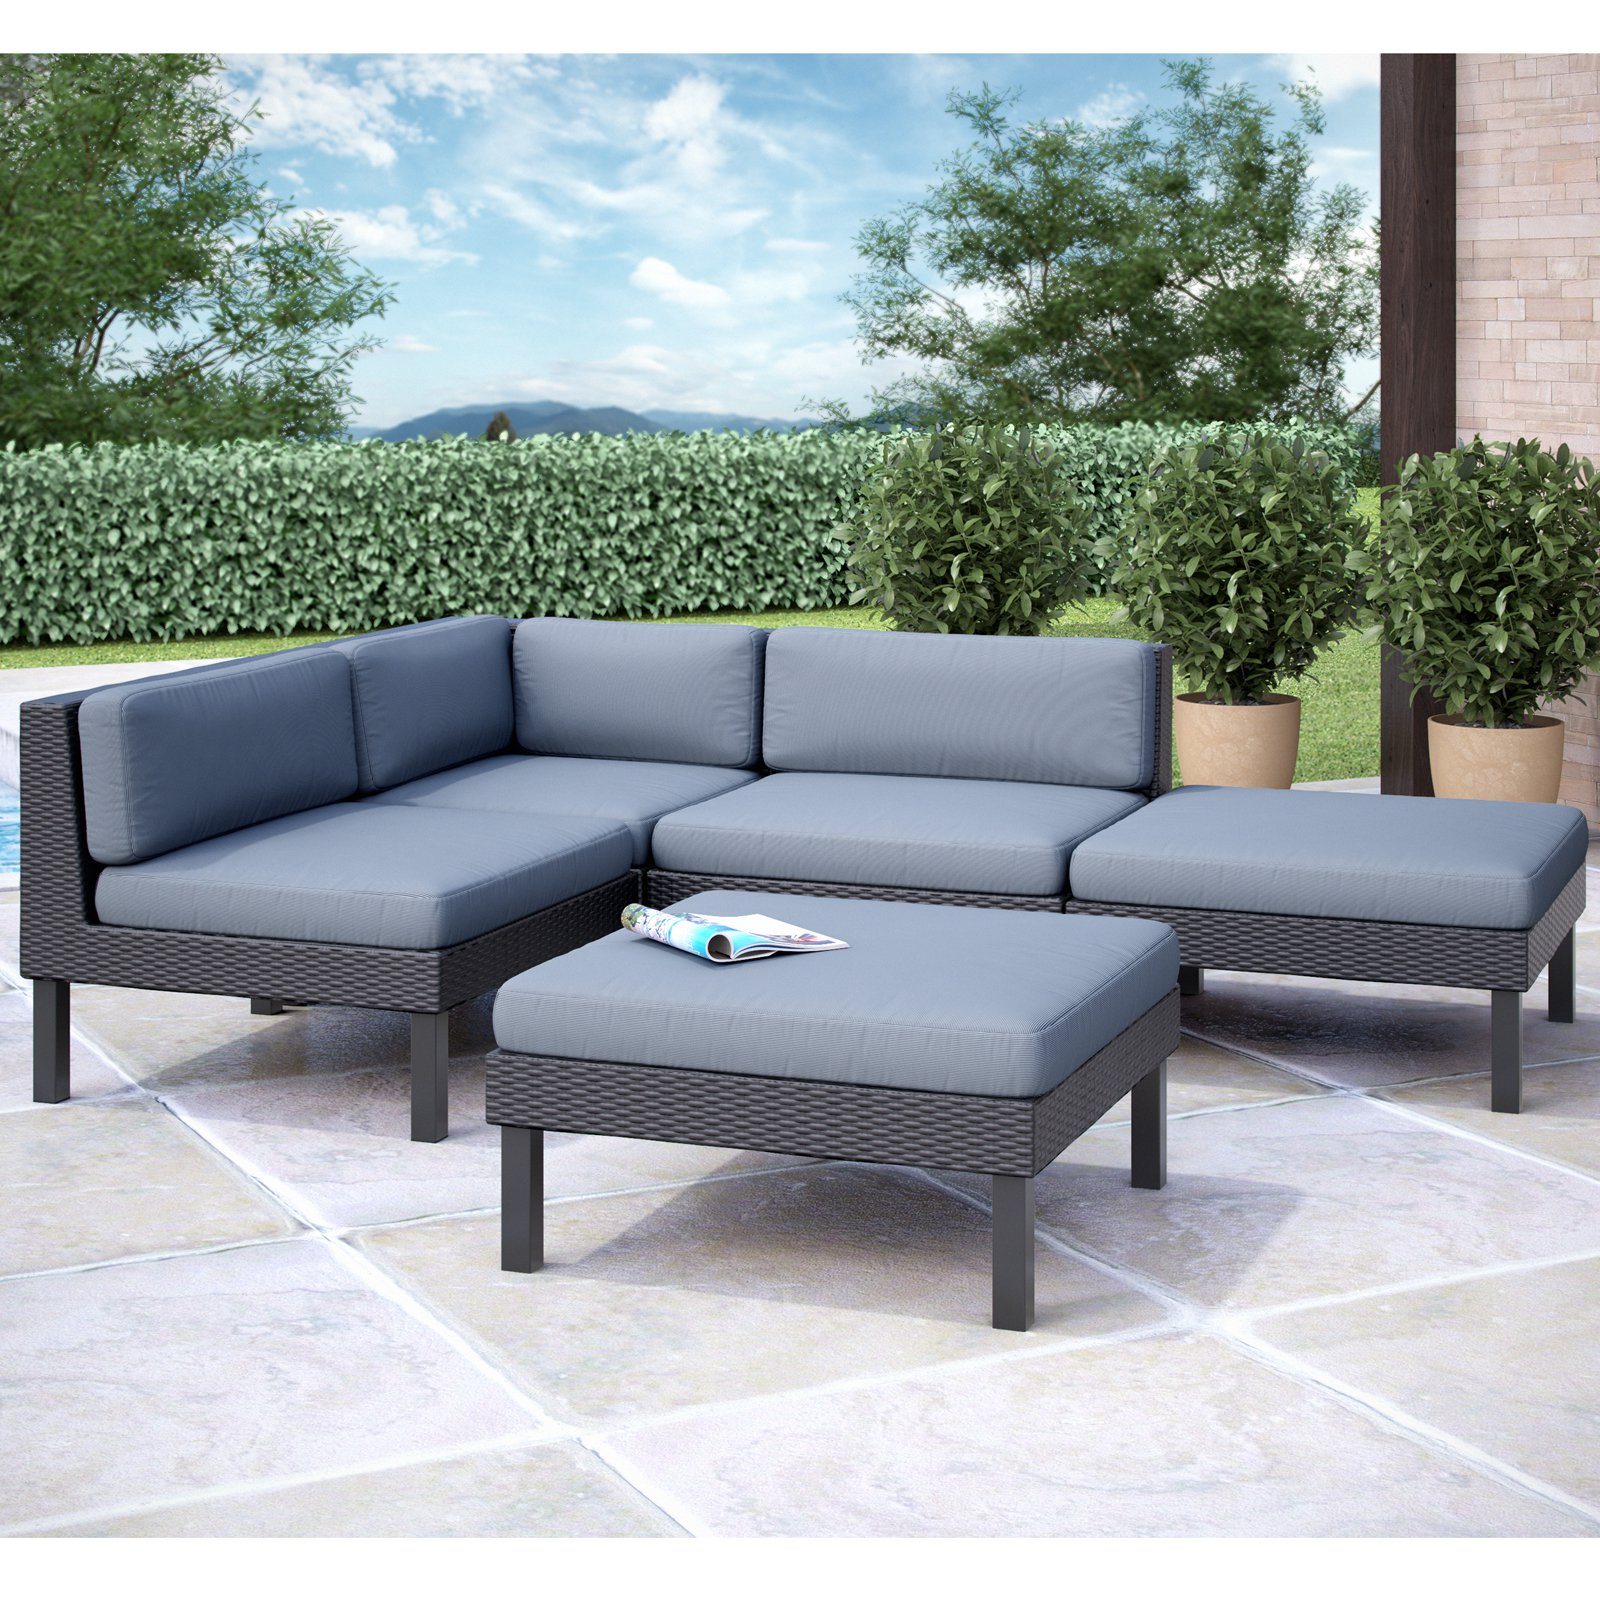 CorLiving Oakland 5pc Sectional Patio Set, Dove Grey Cushions